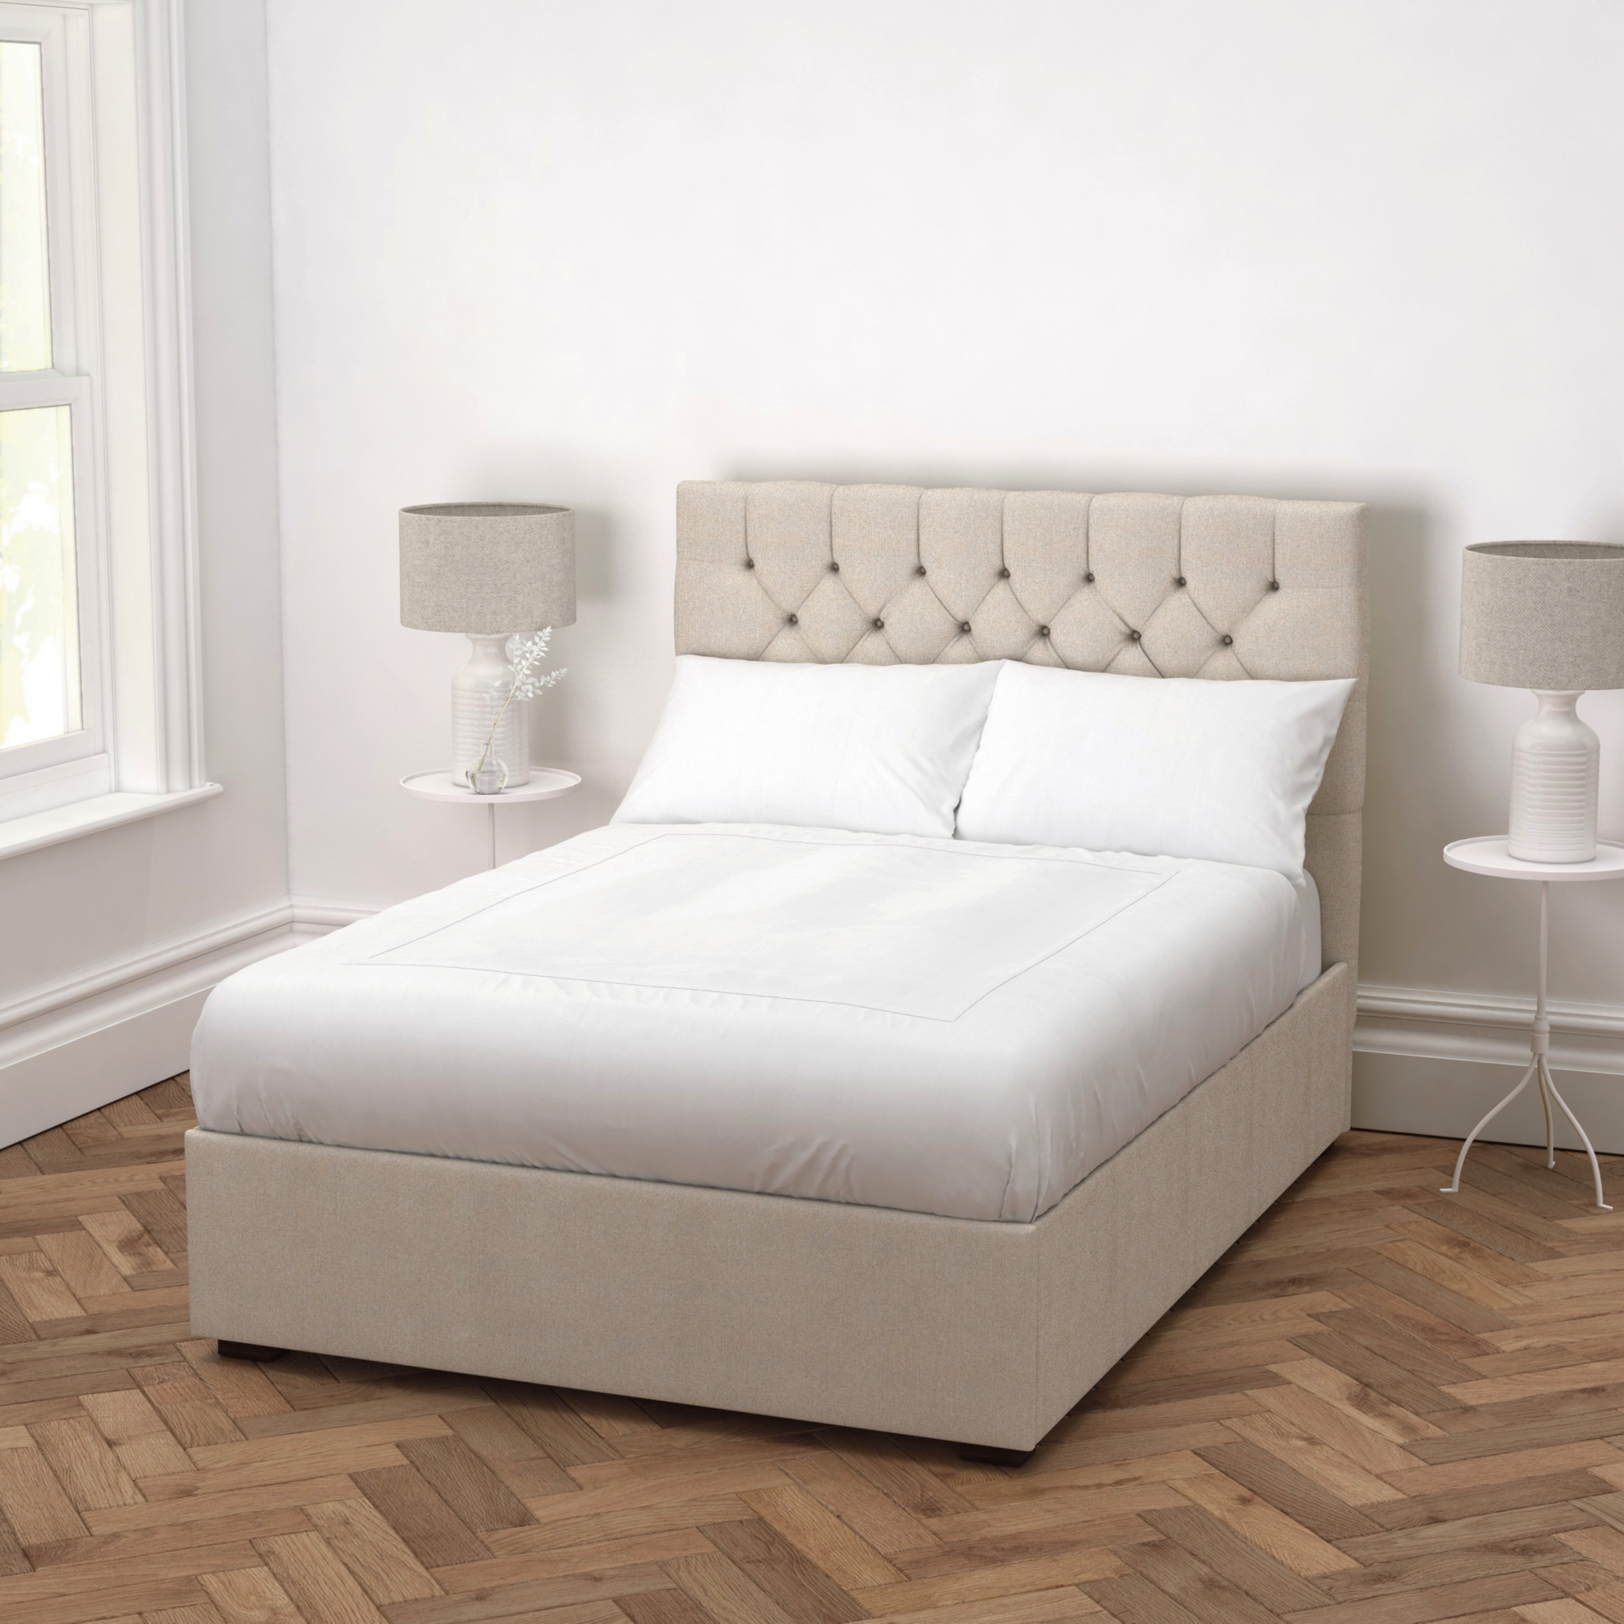 Bed Pictures beds | metal, wooden & upholstered | the white company uk